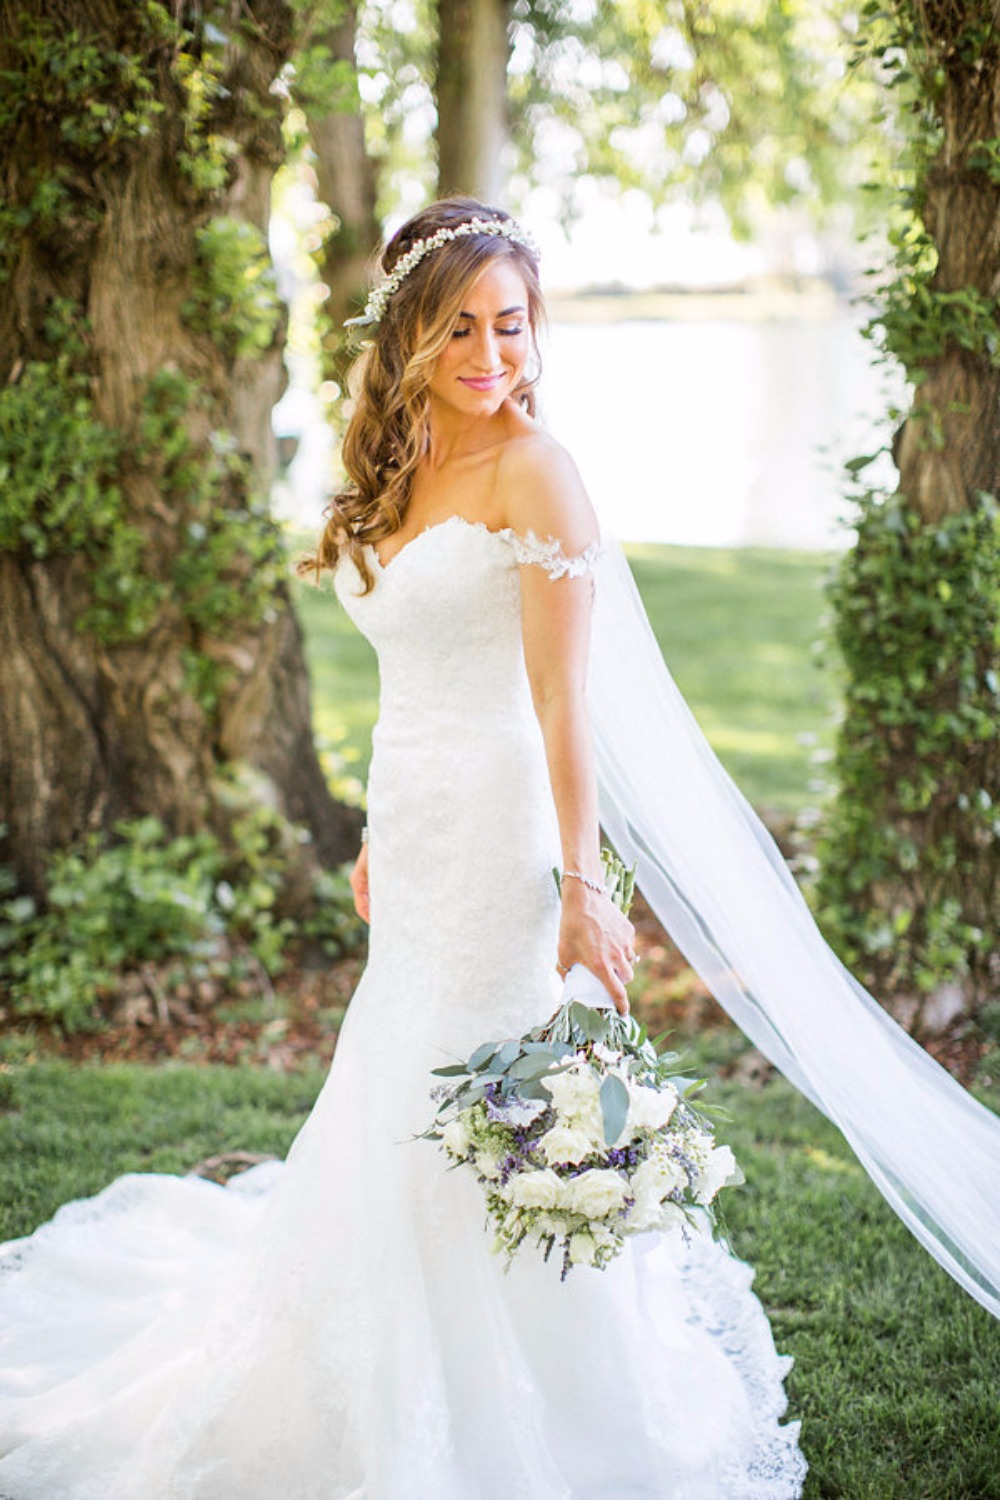 Bridal fashion and style